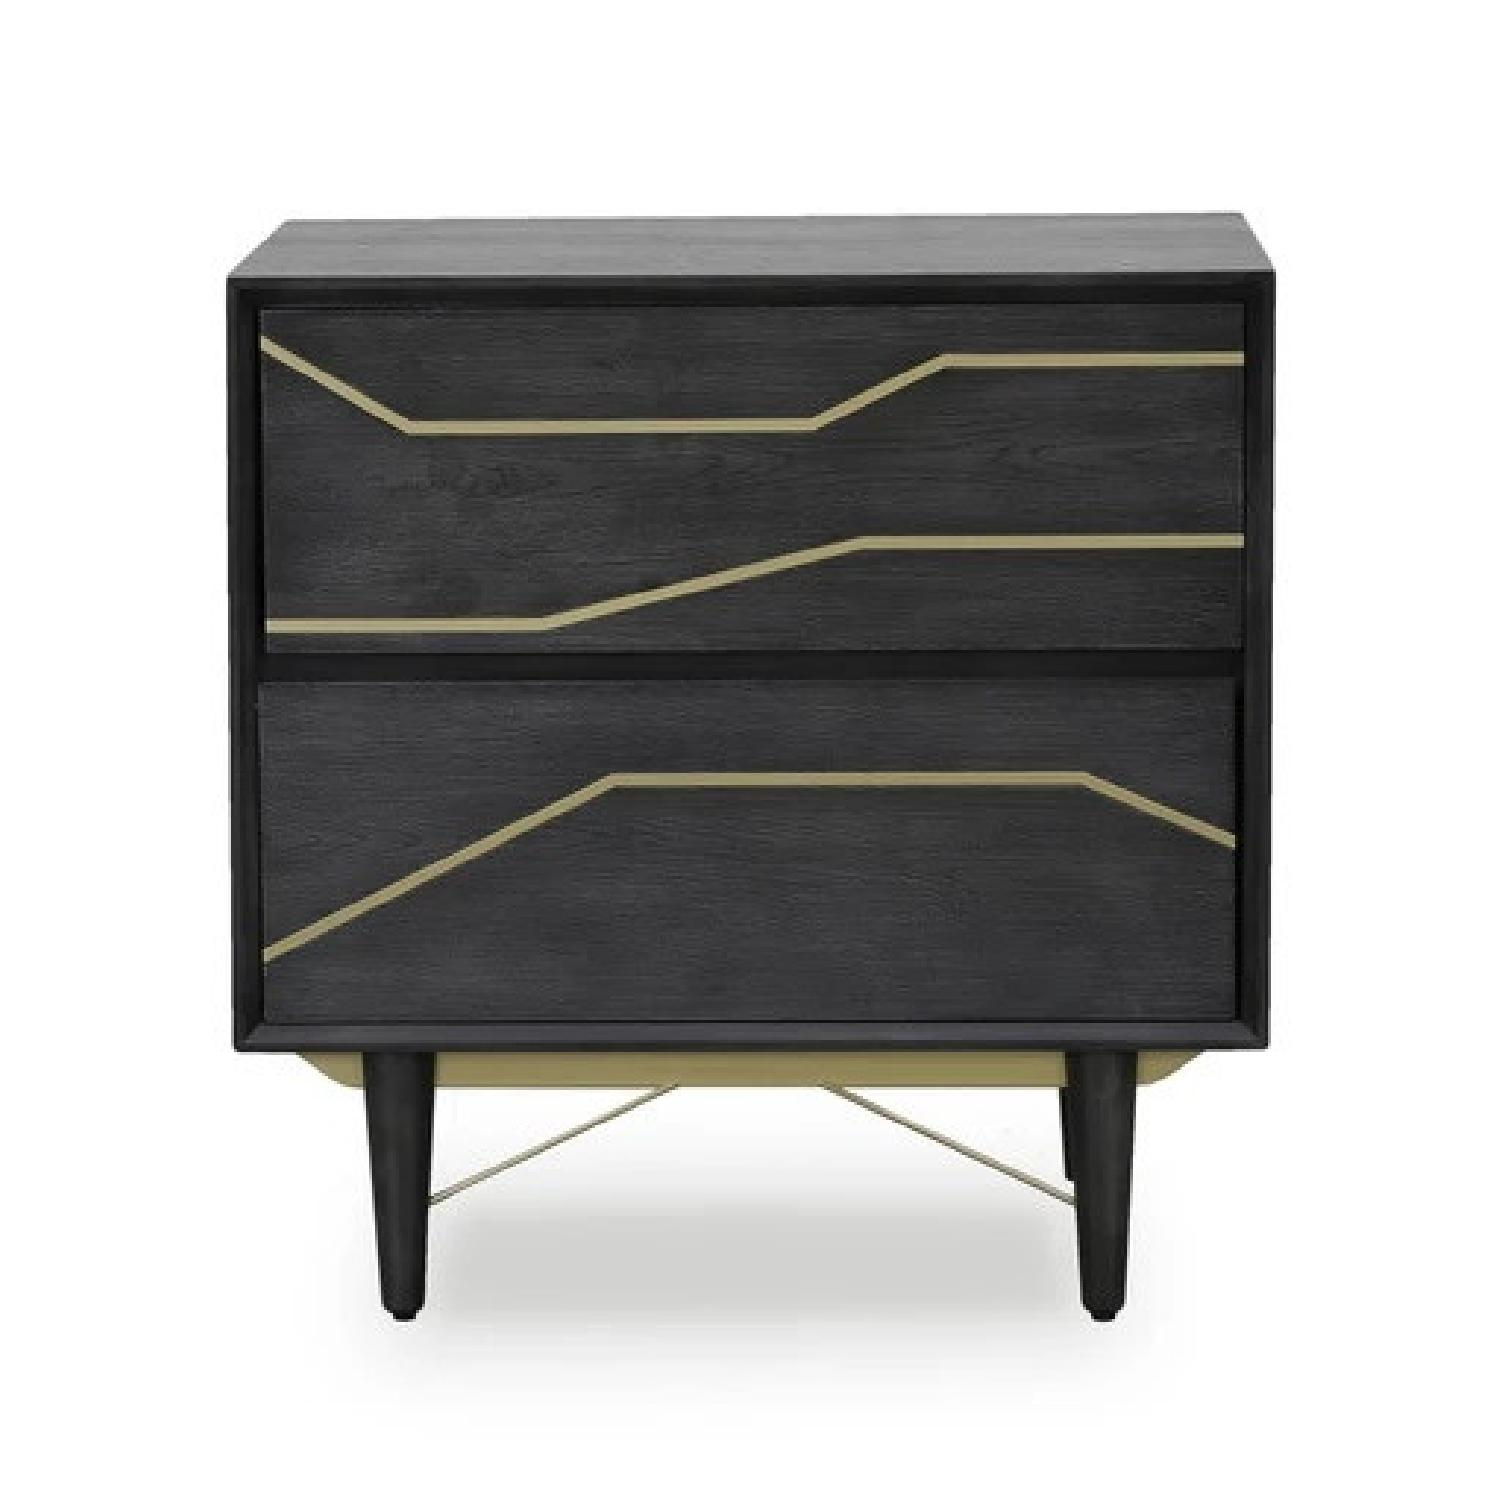 Modern Nightstand in Graphite Finish w/ Gold Color Inlay - image-0